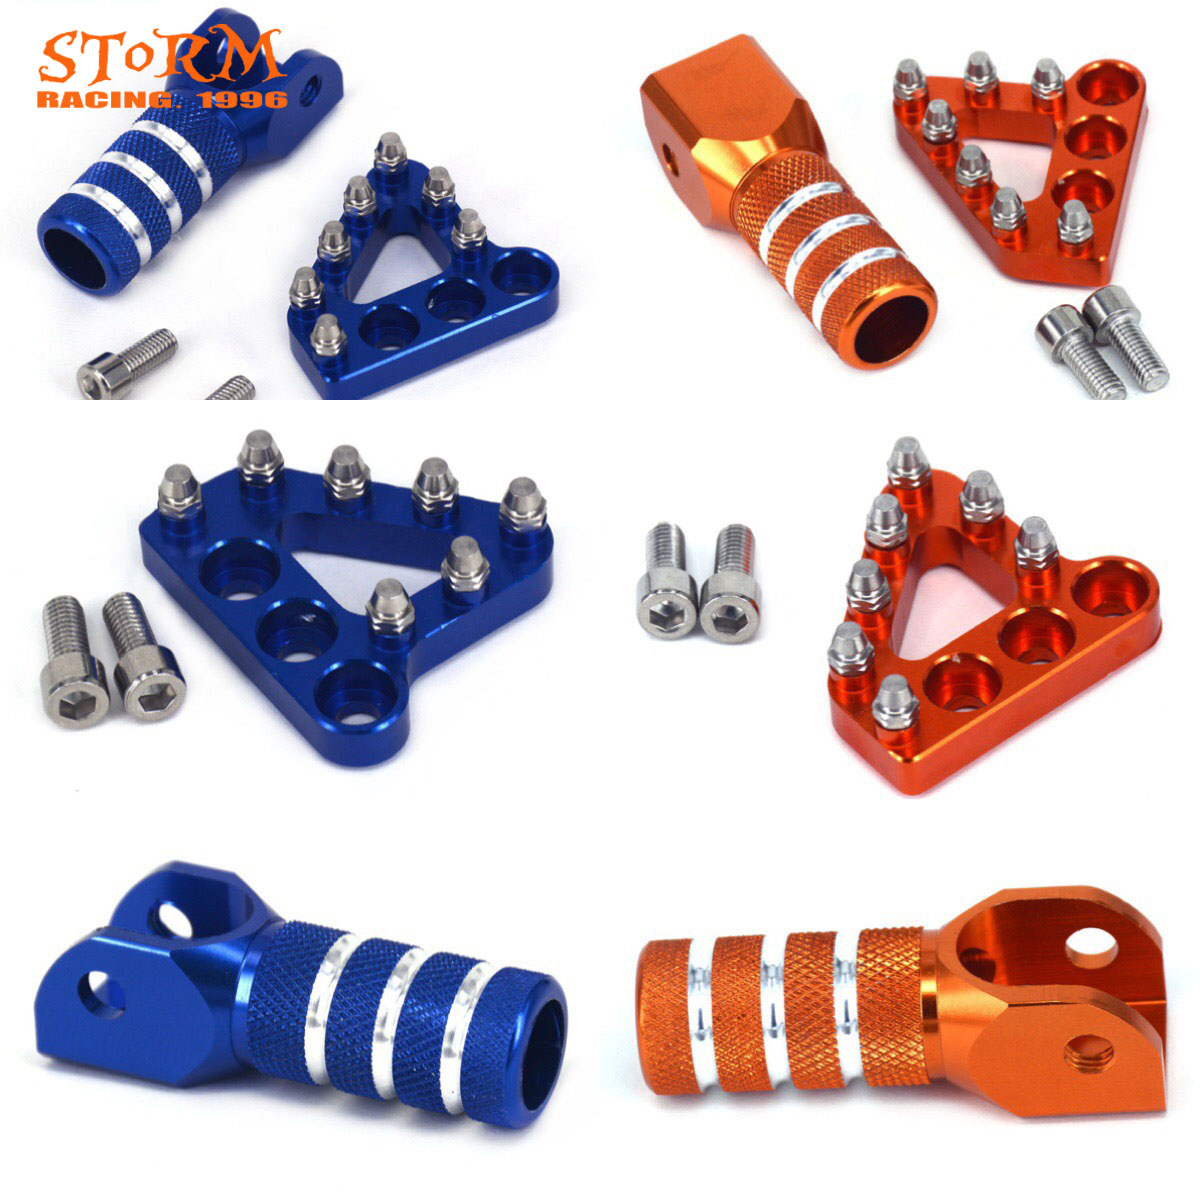 Rear Brake Pedal Step Plate Gear Shifter Lever Tip For KTM duke125 200 390 990 950 ADVENTURE 690 DUKE SMC 690 ENDURO EXC duke125 duke 200 motorcycle exhaust middle pipe exhaust link pipe motorbike mid pipe for ktm duke125 duke 200 duke 250 duke 390